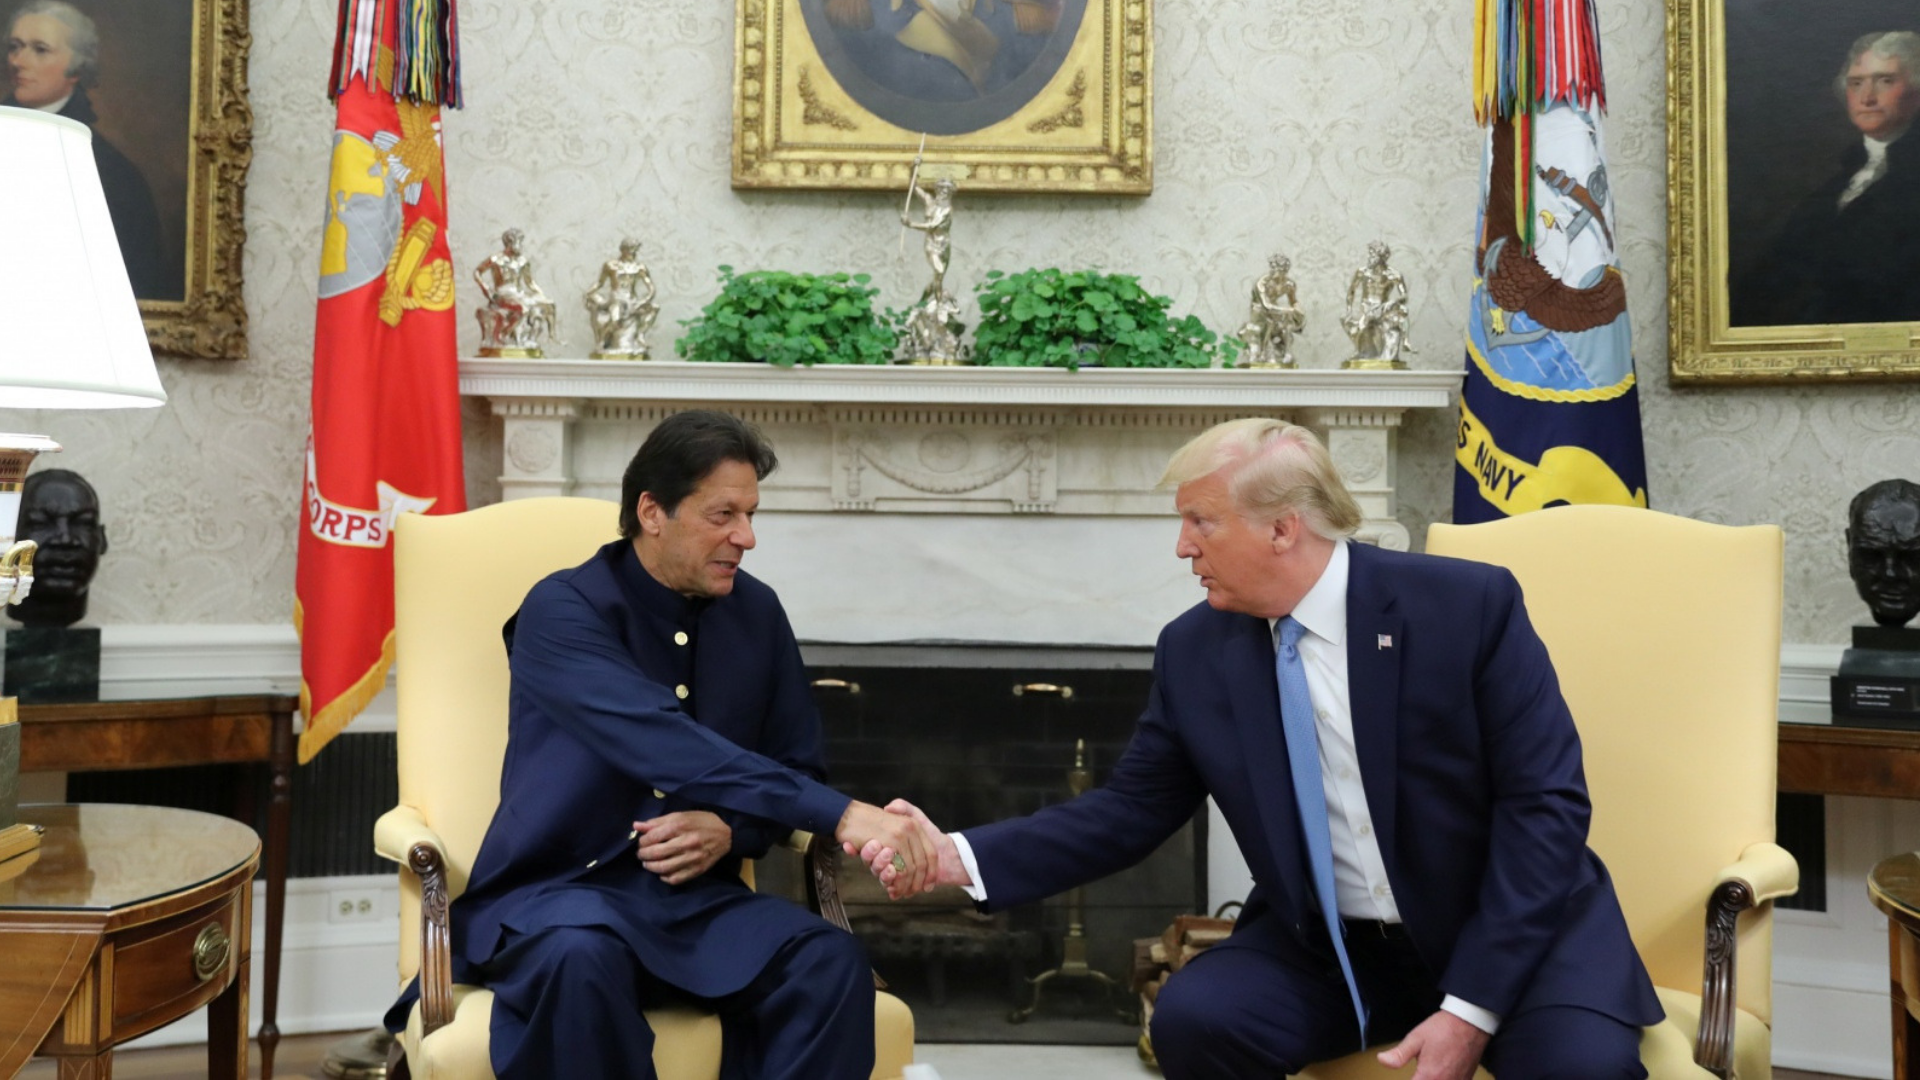 Imran Khan and Trump: From Ugly to Good